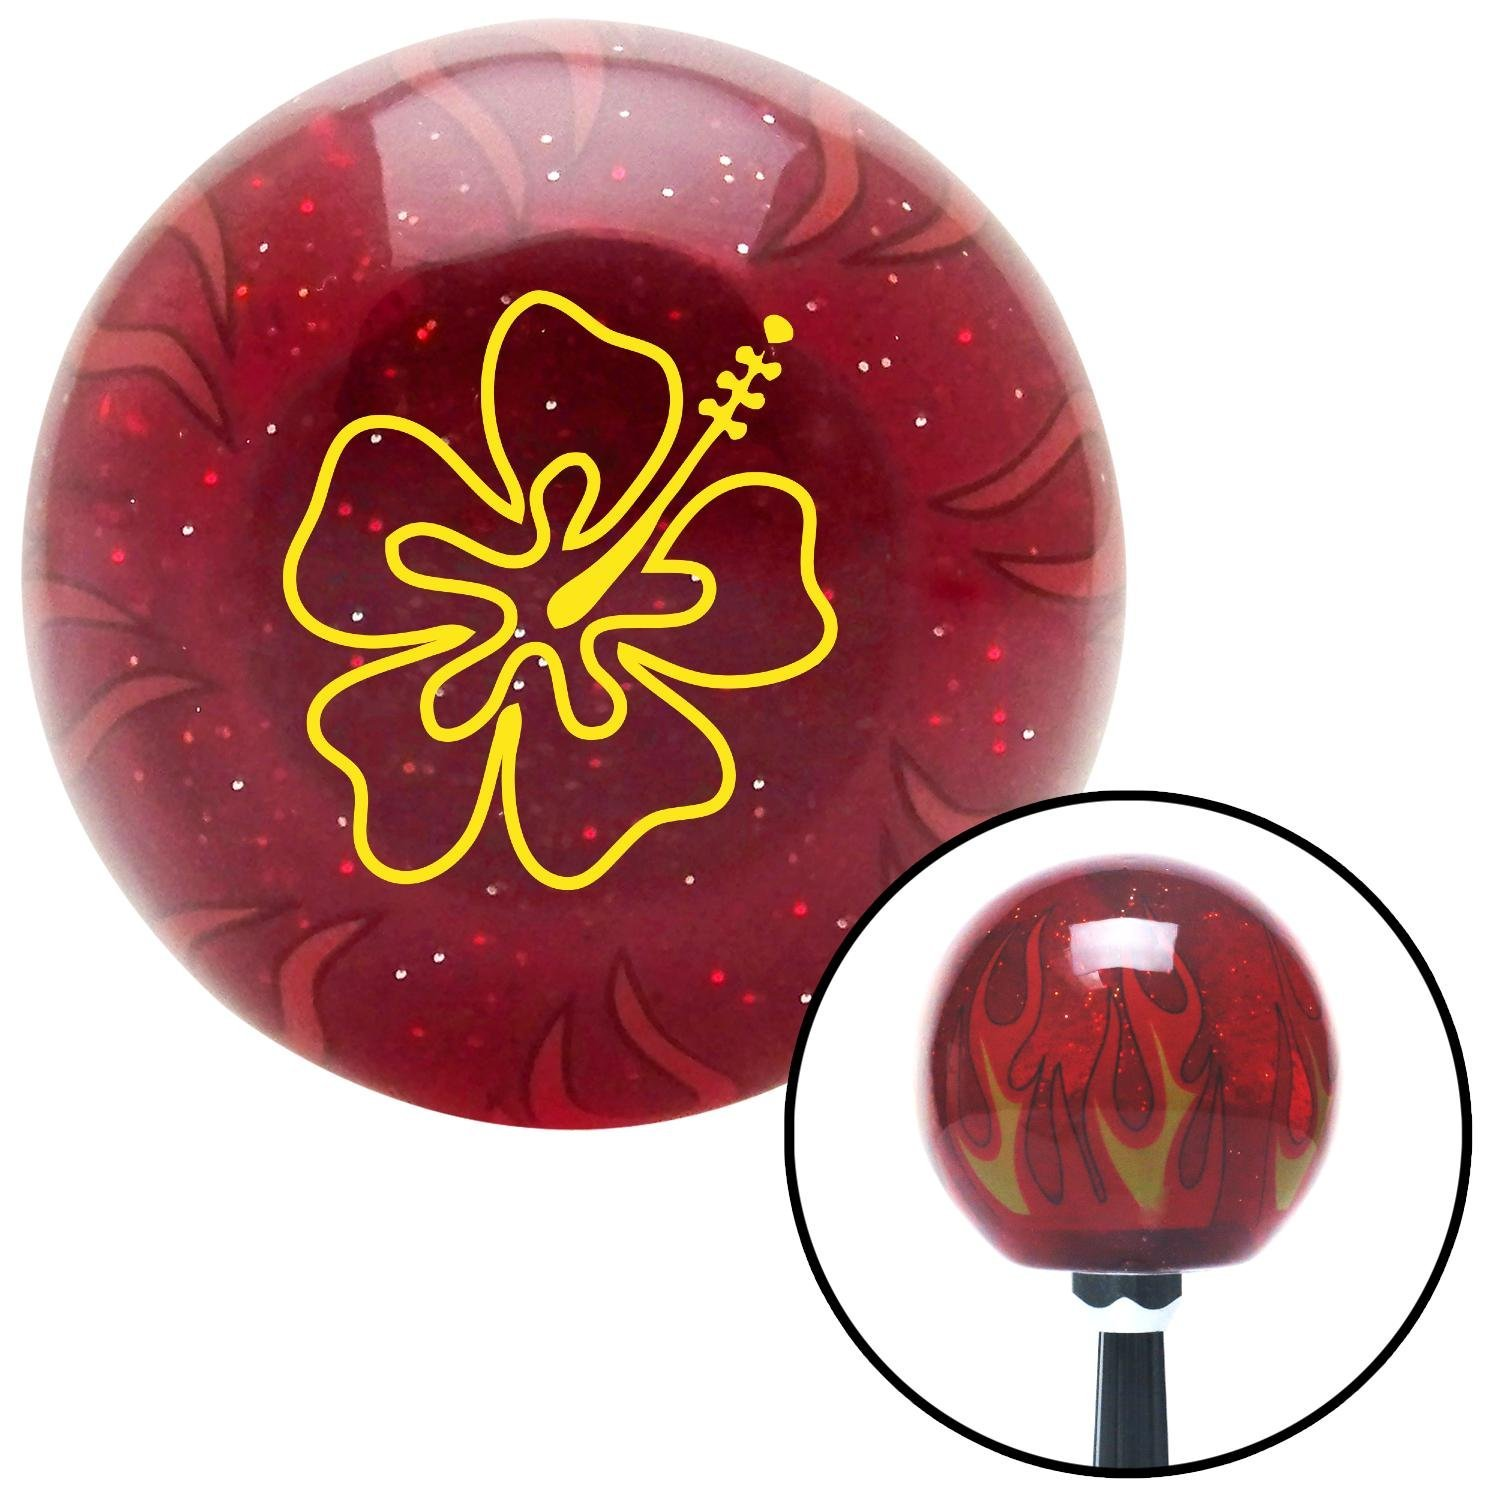 American Shifter 240663 Red Flame Metal Flake Shift Knob with M16 x 1.5 Insert Yellow Hawaiian Flower #8